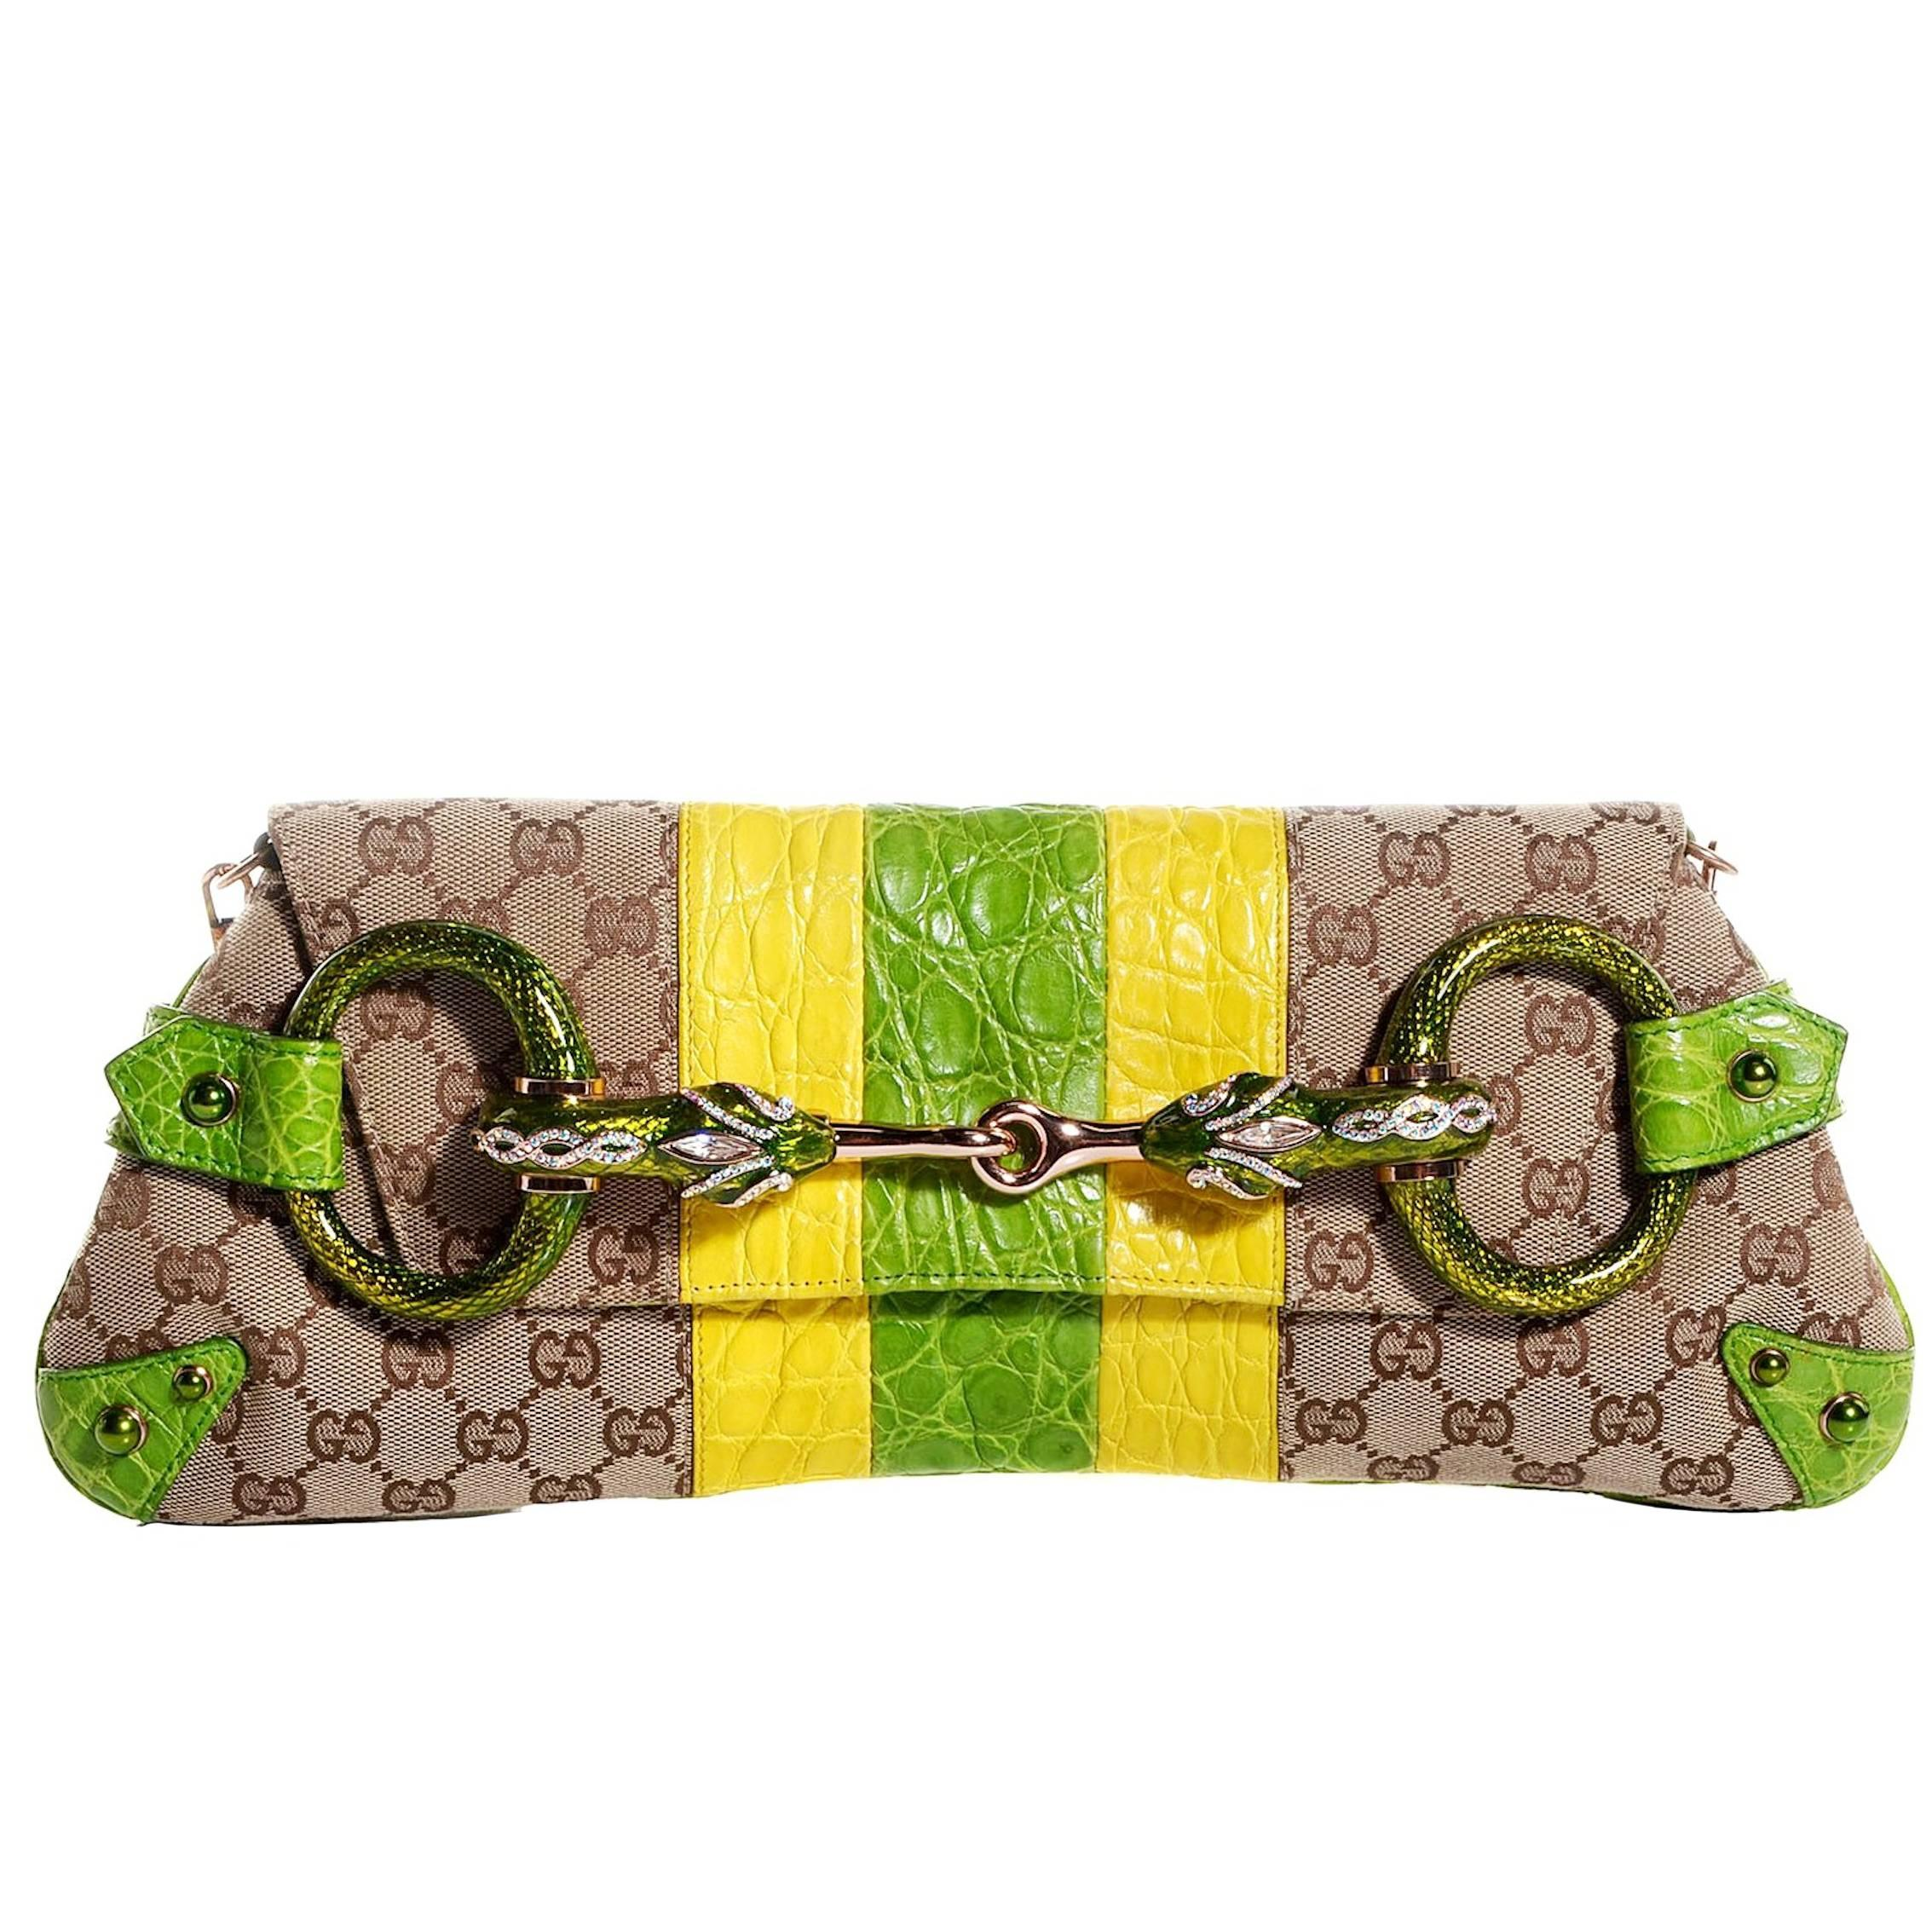 b3672422a9b Gucci Tom Ford SS 2004 Striped Canvas Croc Jeweled Snake XXL Clutch Bag For  Sale at 1stdibs